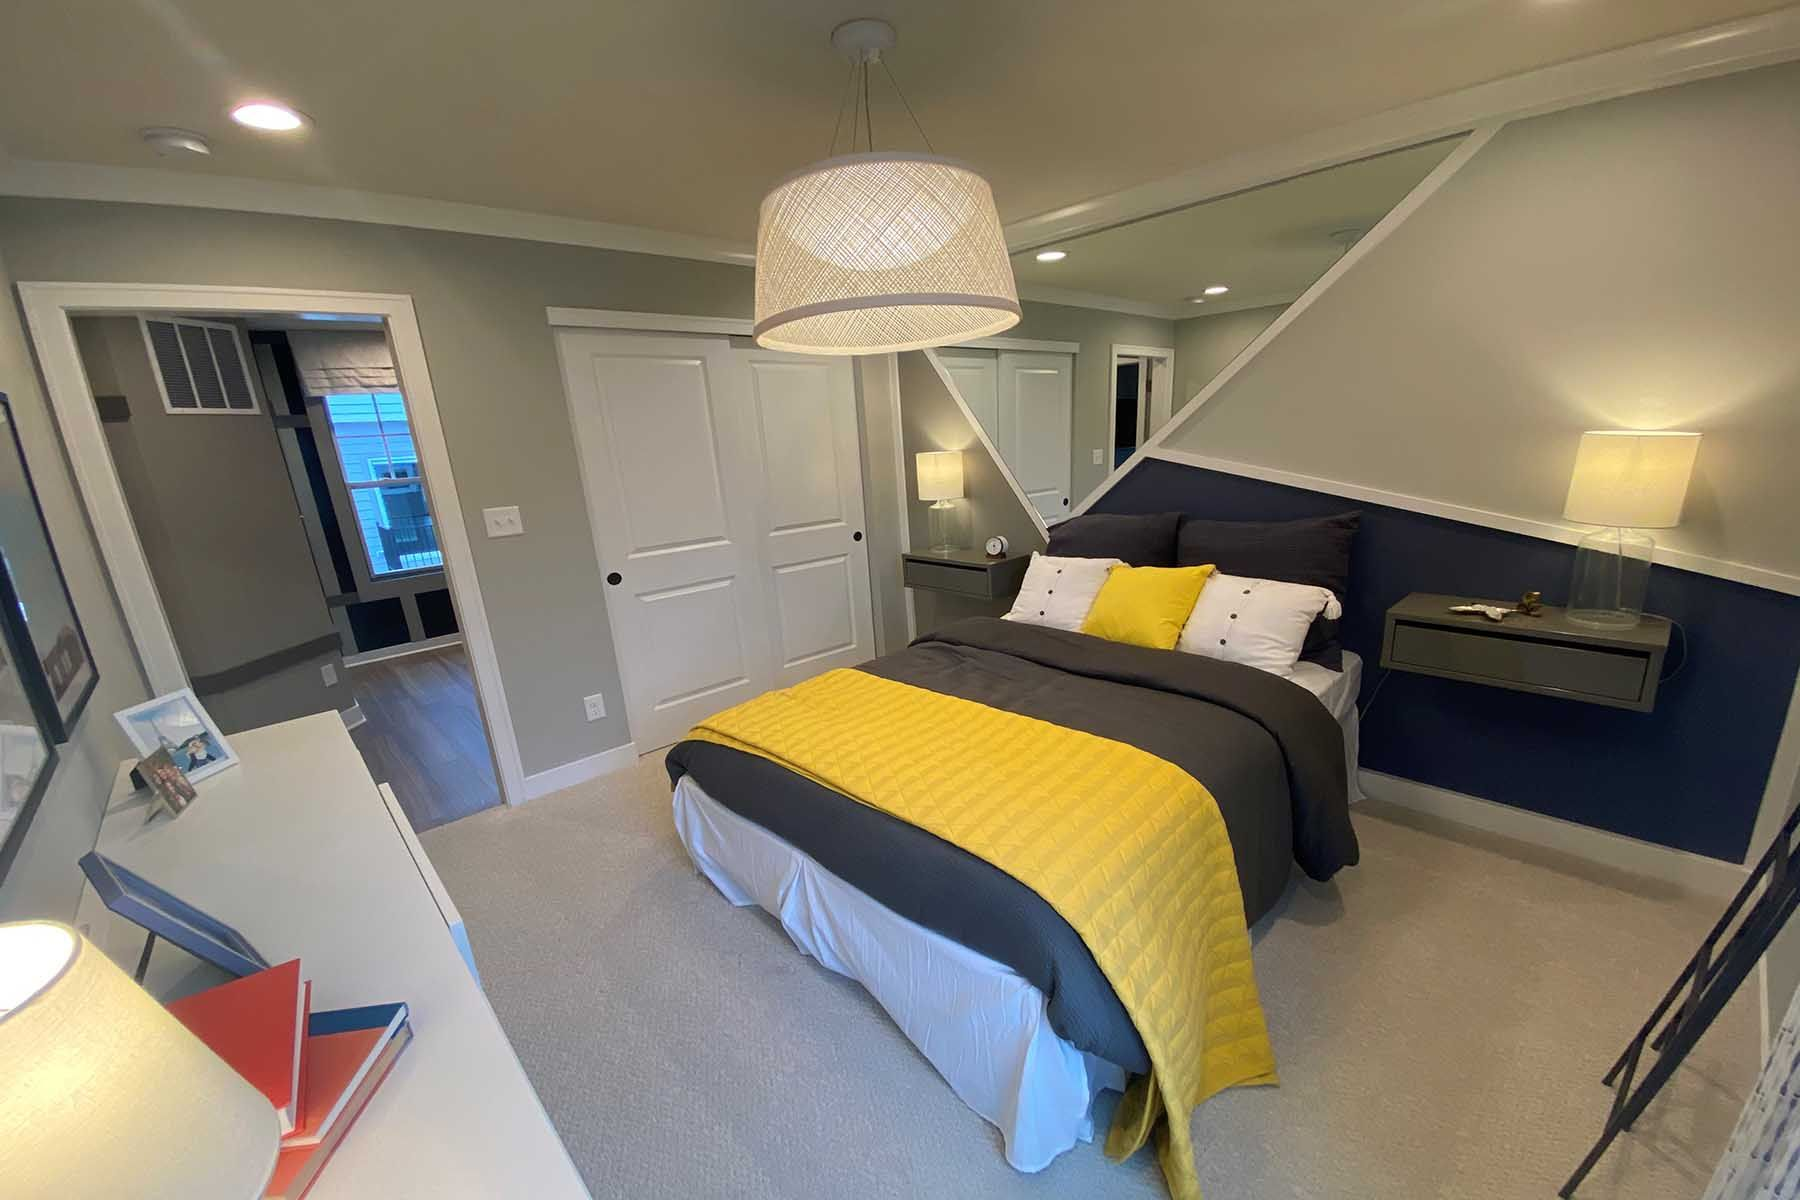 Bedroom featured in the R2050 By M/I Homes in Indianapolis, IN